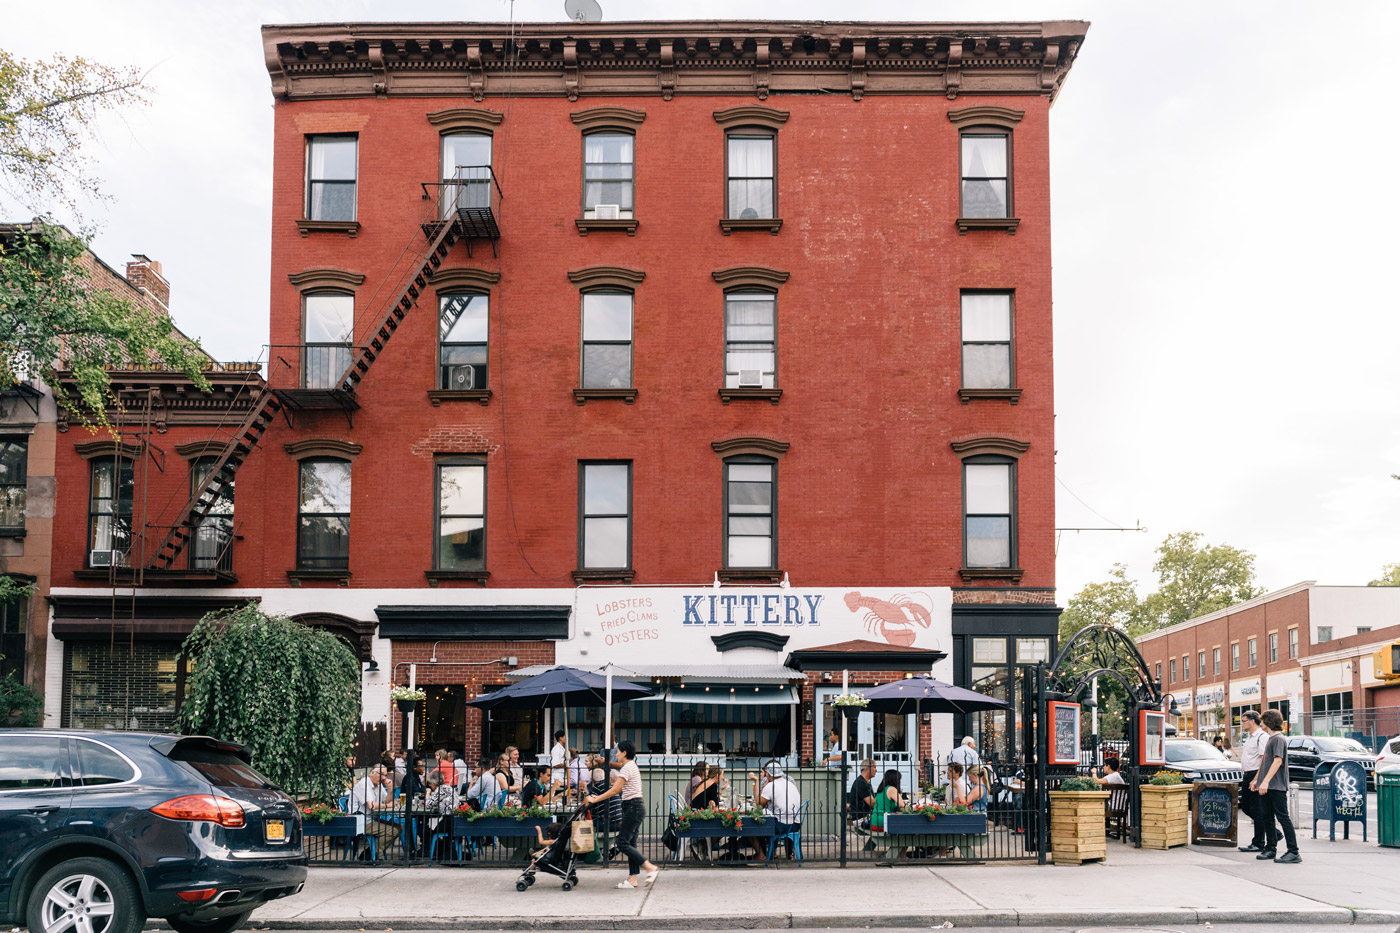 "The Kittery restaurant on Smith St. in Carroll Gardens"" style="